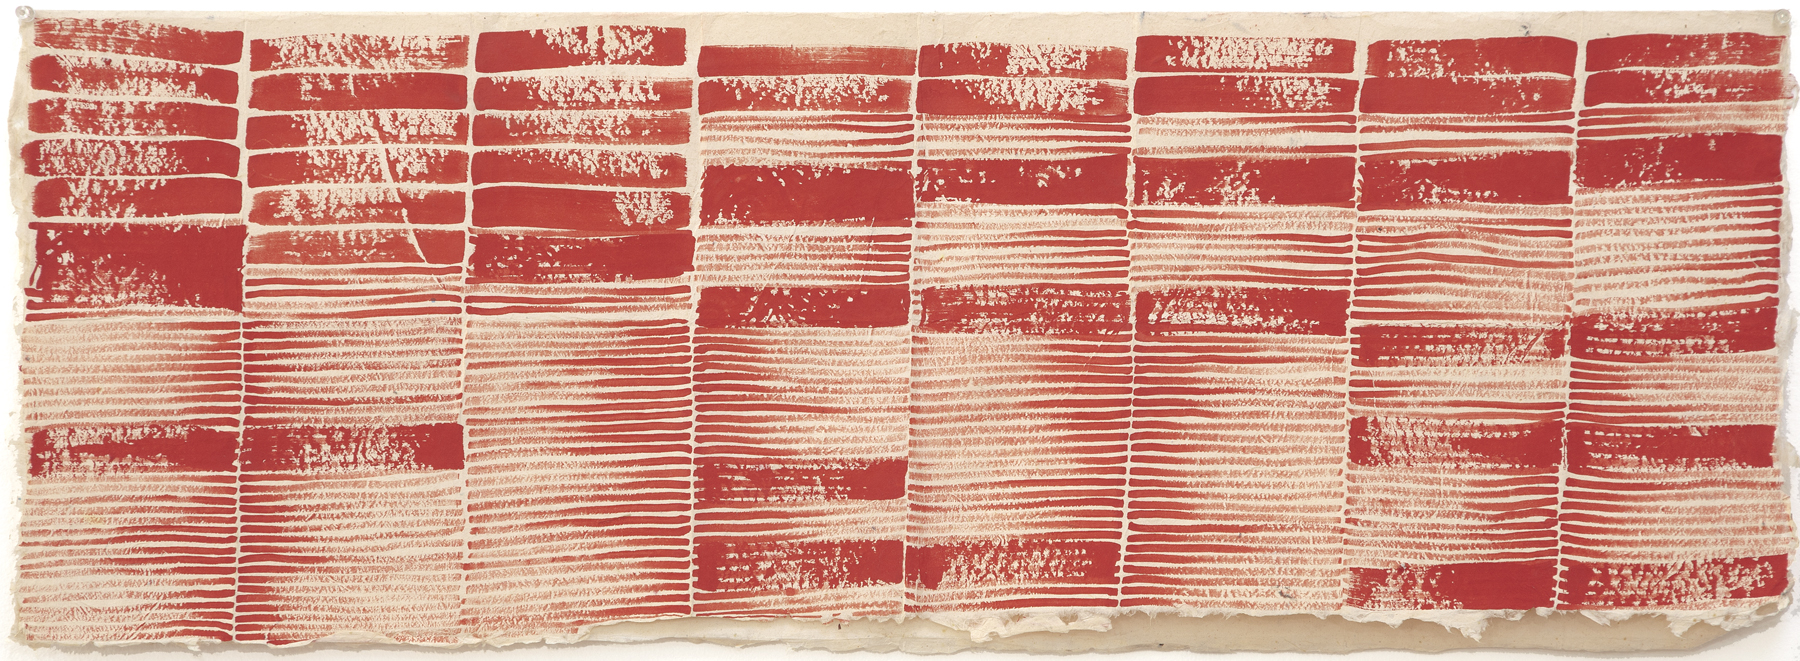 Huguette Caland   Silent Letters , 2001 acrylic on paper 14.17 x 39.37 inches 36 x 100 cm